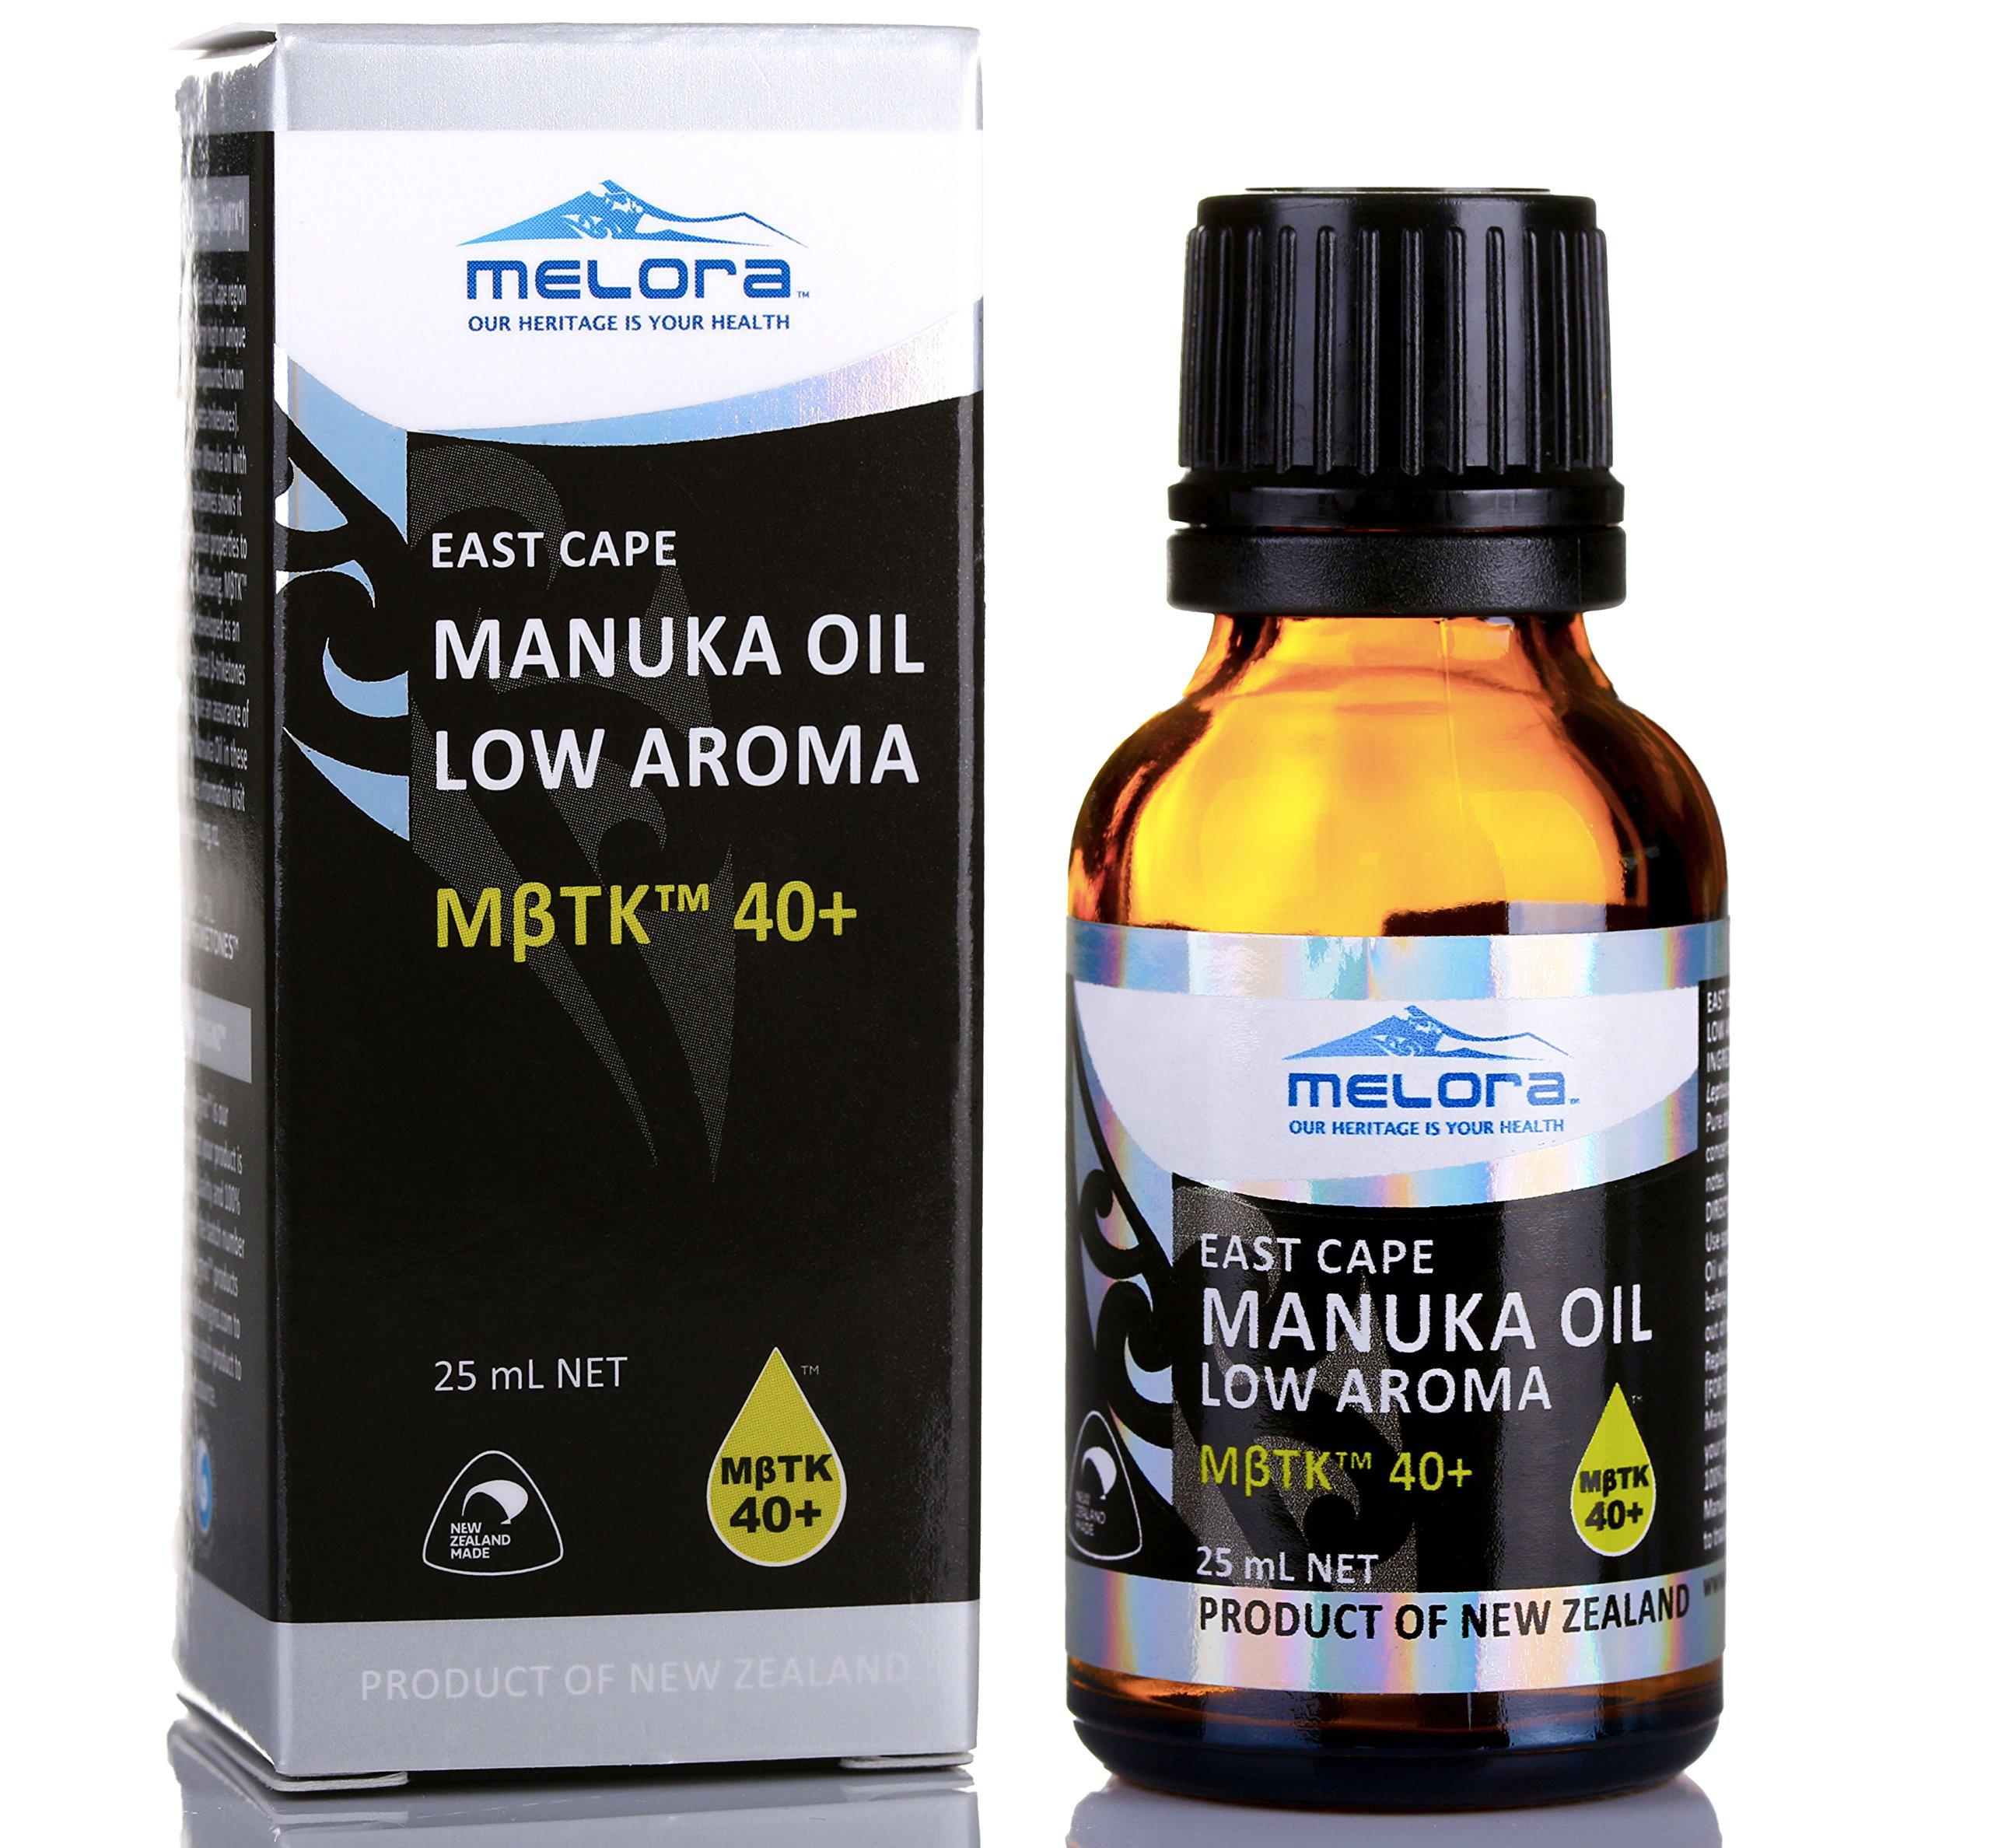 Melora Manuka Oil, MβTK 40+ Low Aroma, 25ml 100% New Zealand East Cape Essential Oil by MELORA